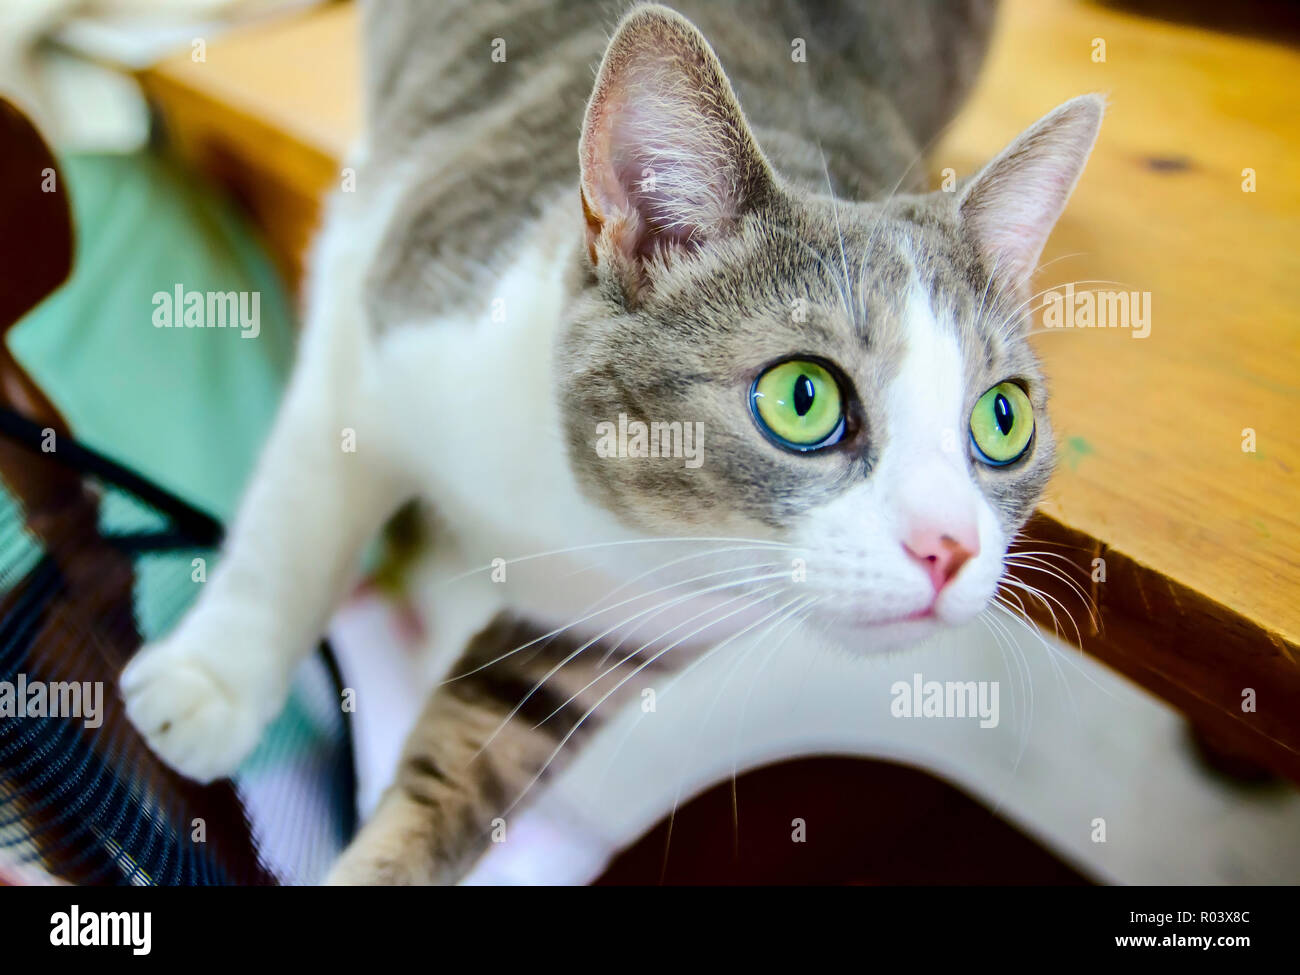 Purl, a domestic shorthair tabby cat, oversees a knitting project at Yarns and More in West Point, Mississippi. Stock Photo